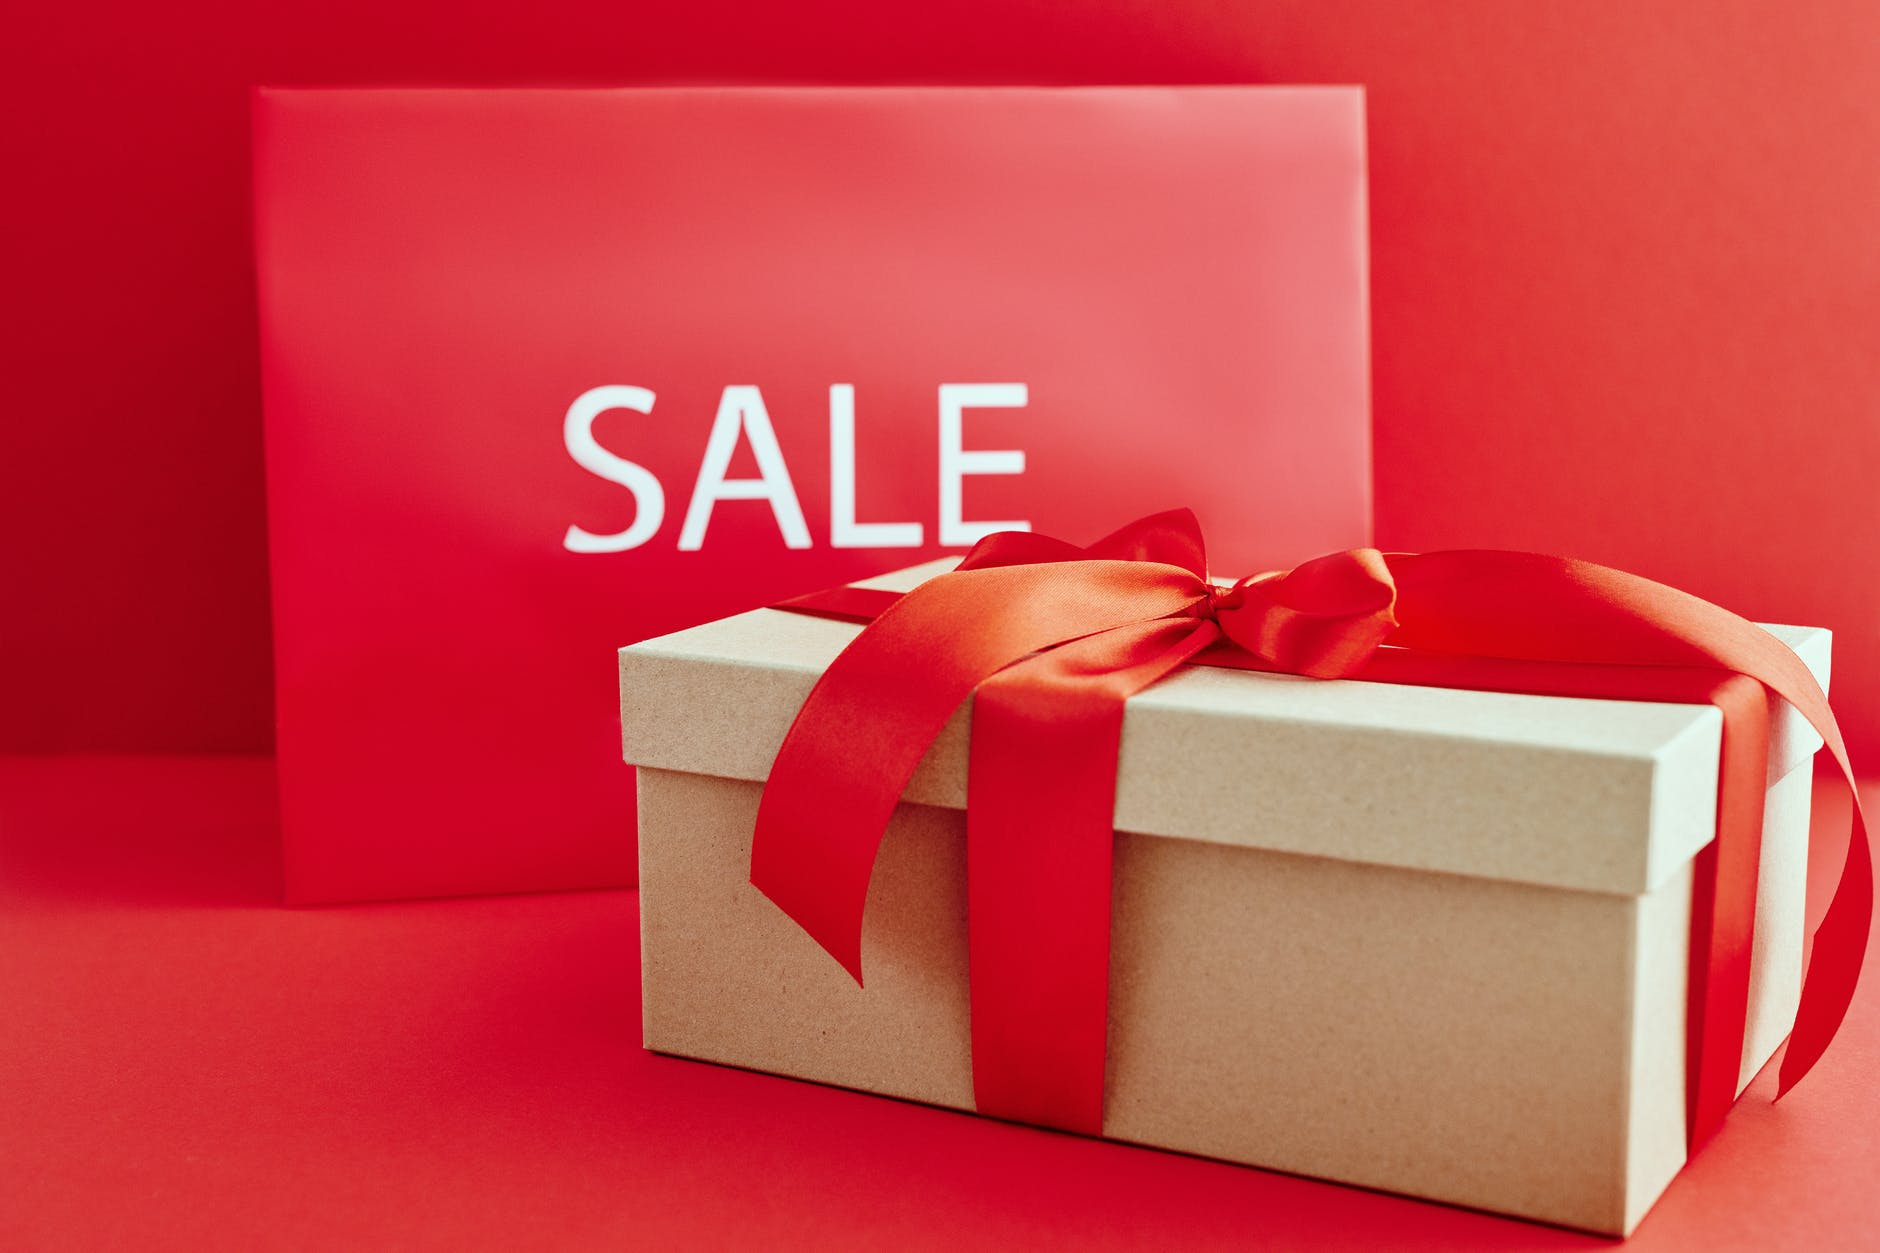 A big gift box with a red bow so you can get the savings when shopping with wish.